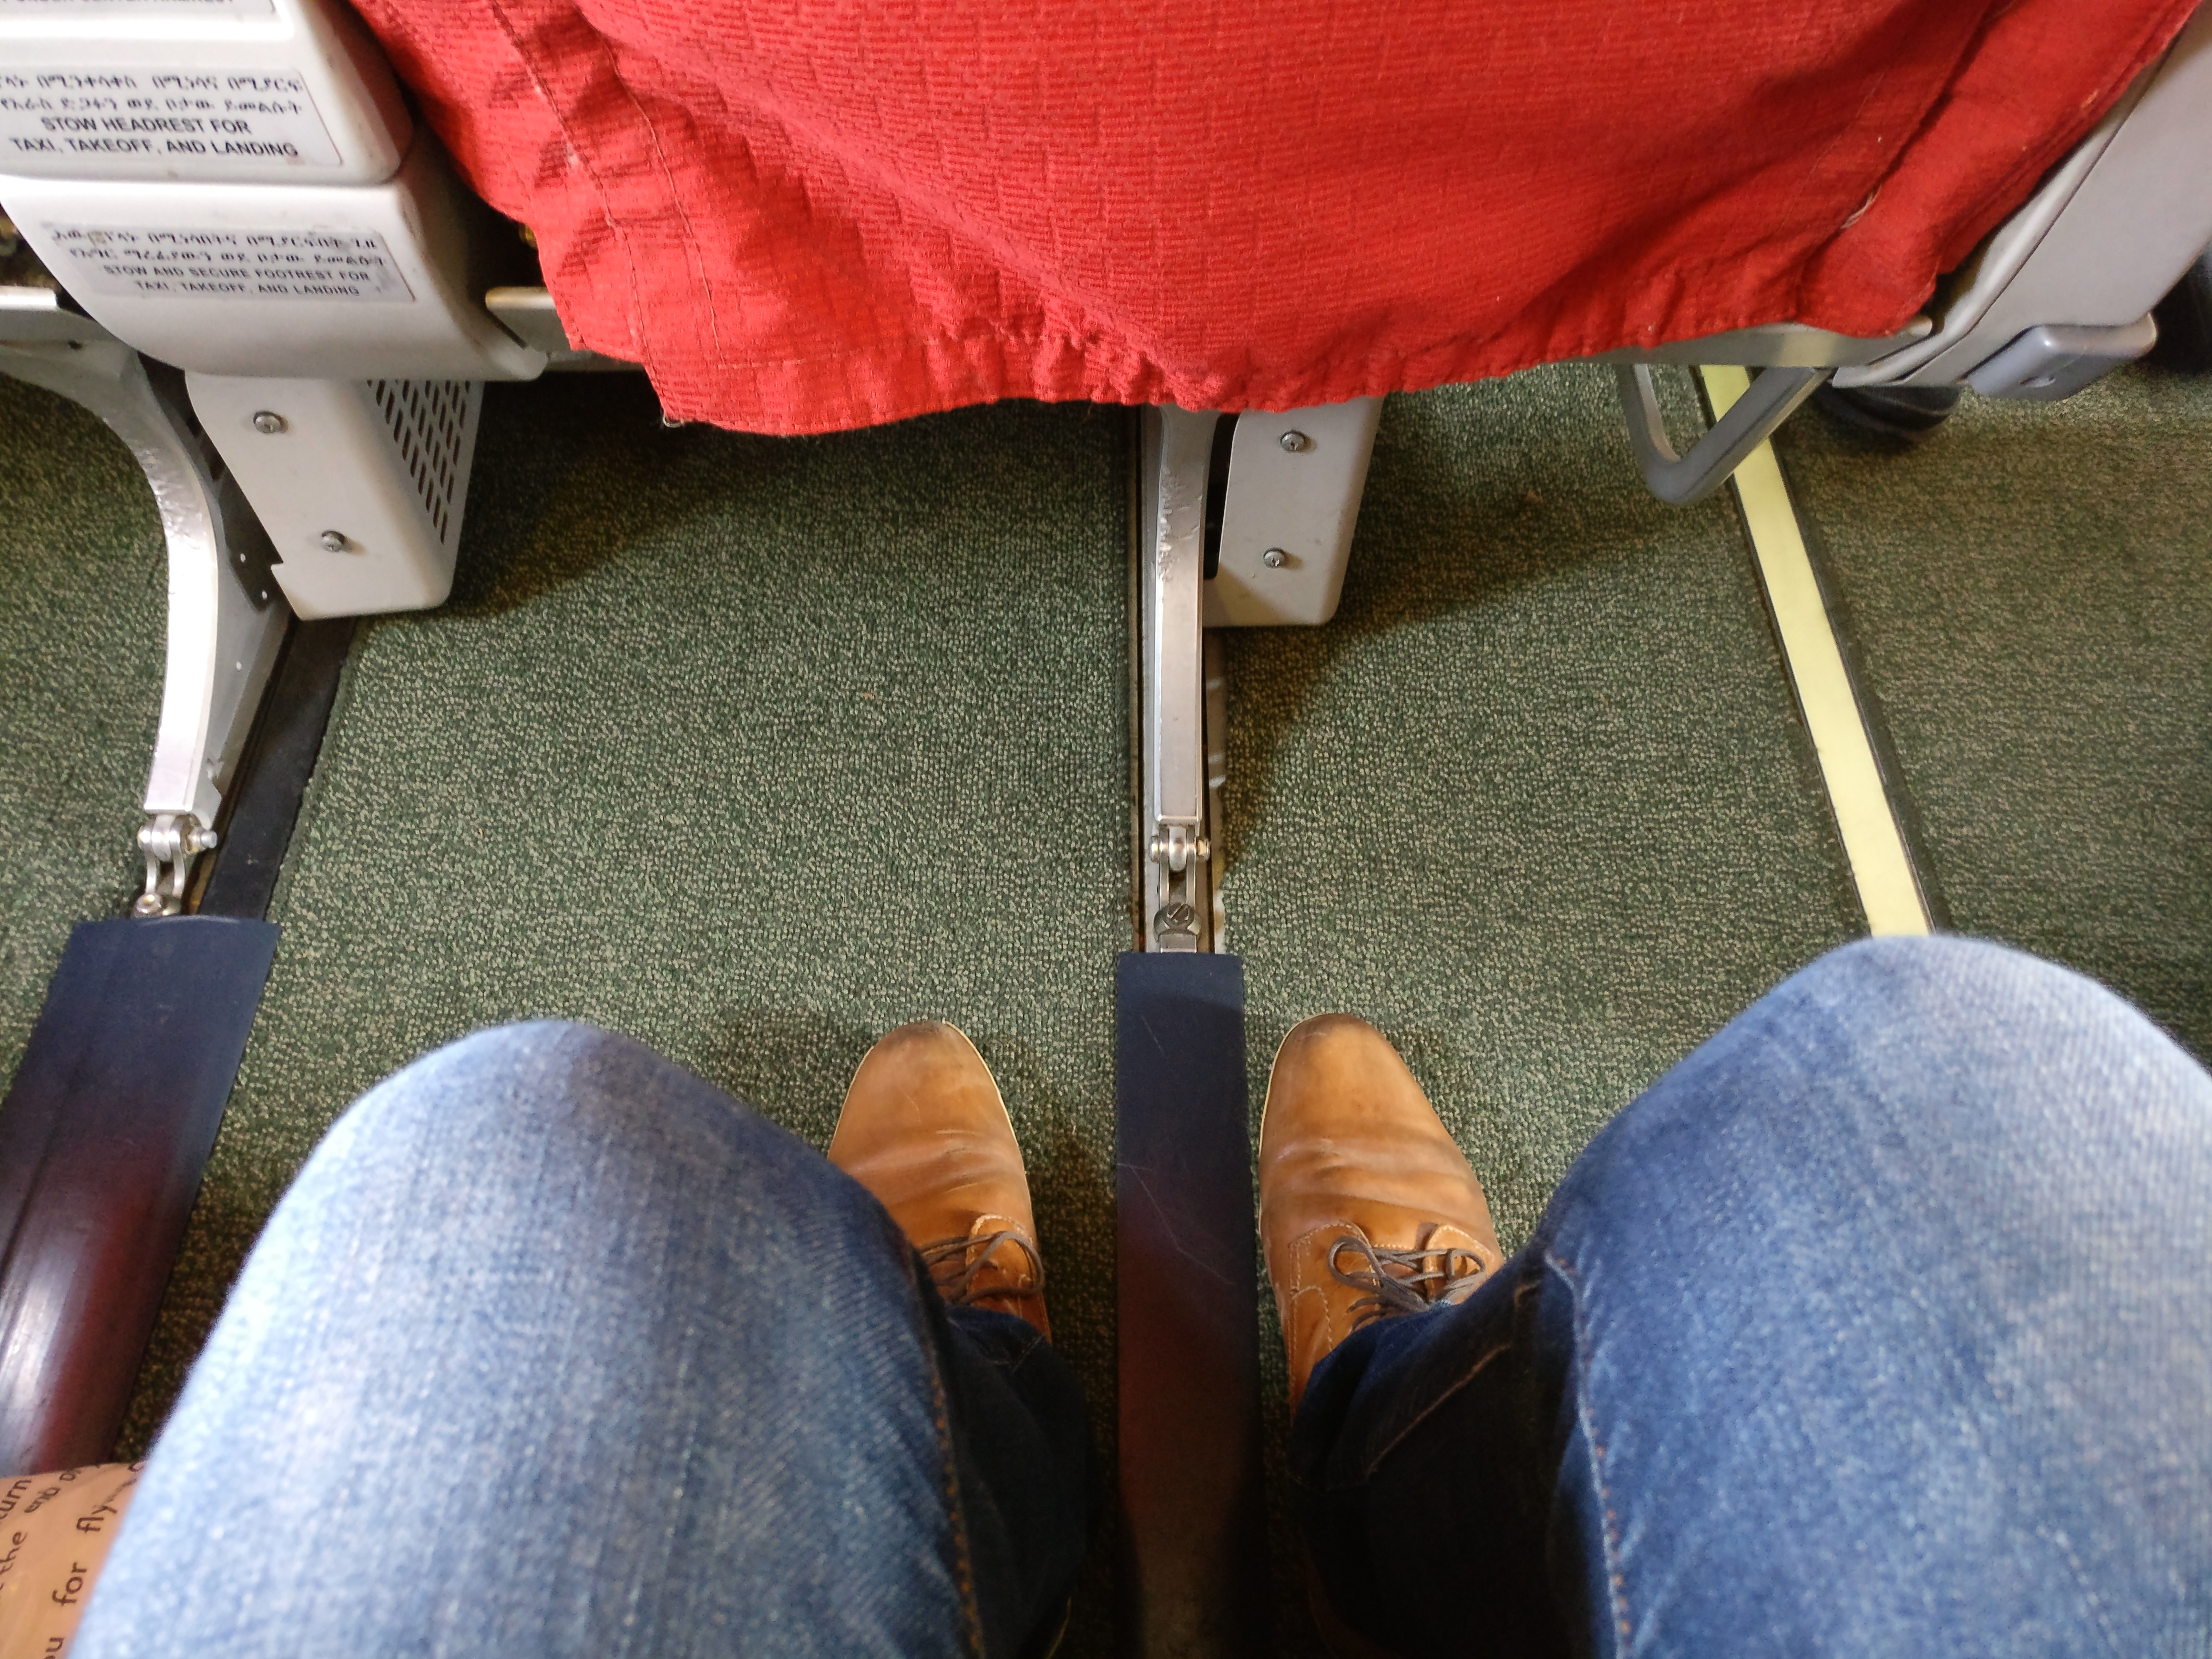 Ethiopian Airlines Business Class Boeing 737 Seat Pitch